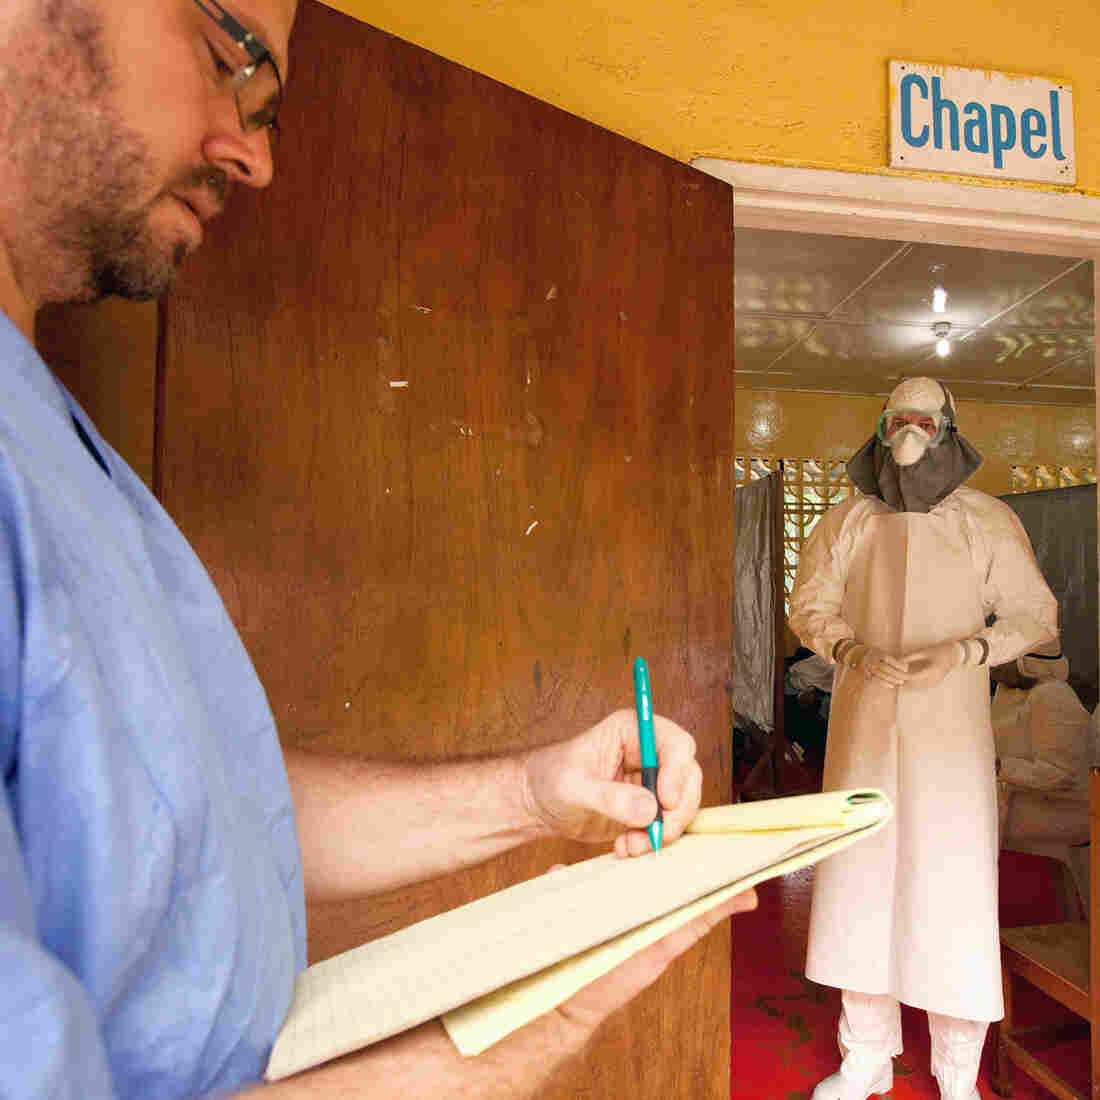 Dr. Kent Brantly (right) of Samaritan's Purse gives orders to treat Ebola patients through the doorway of the isolation ward in Monrovia, Liberia.